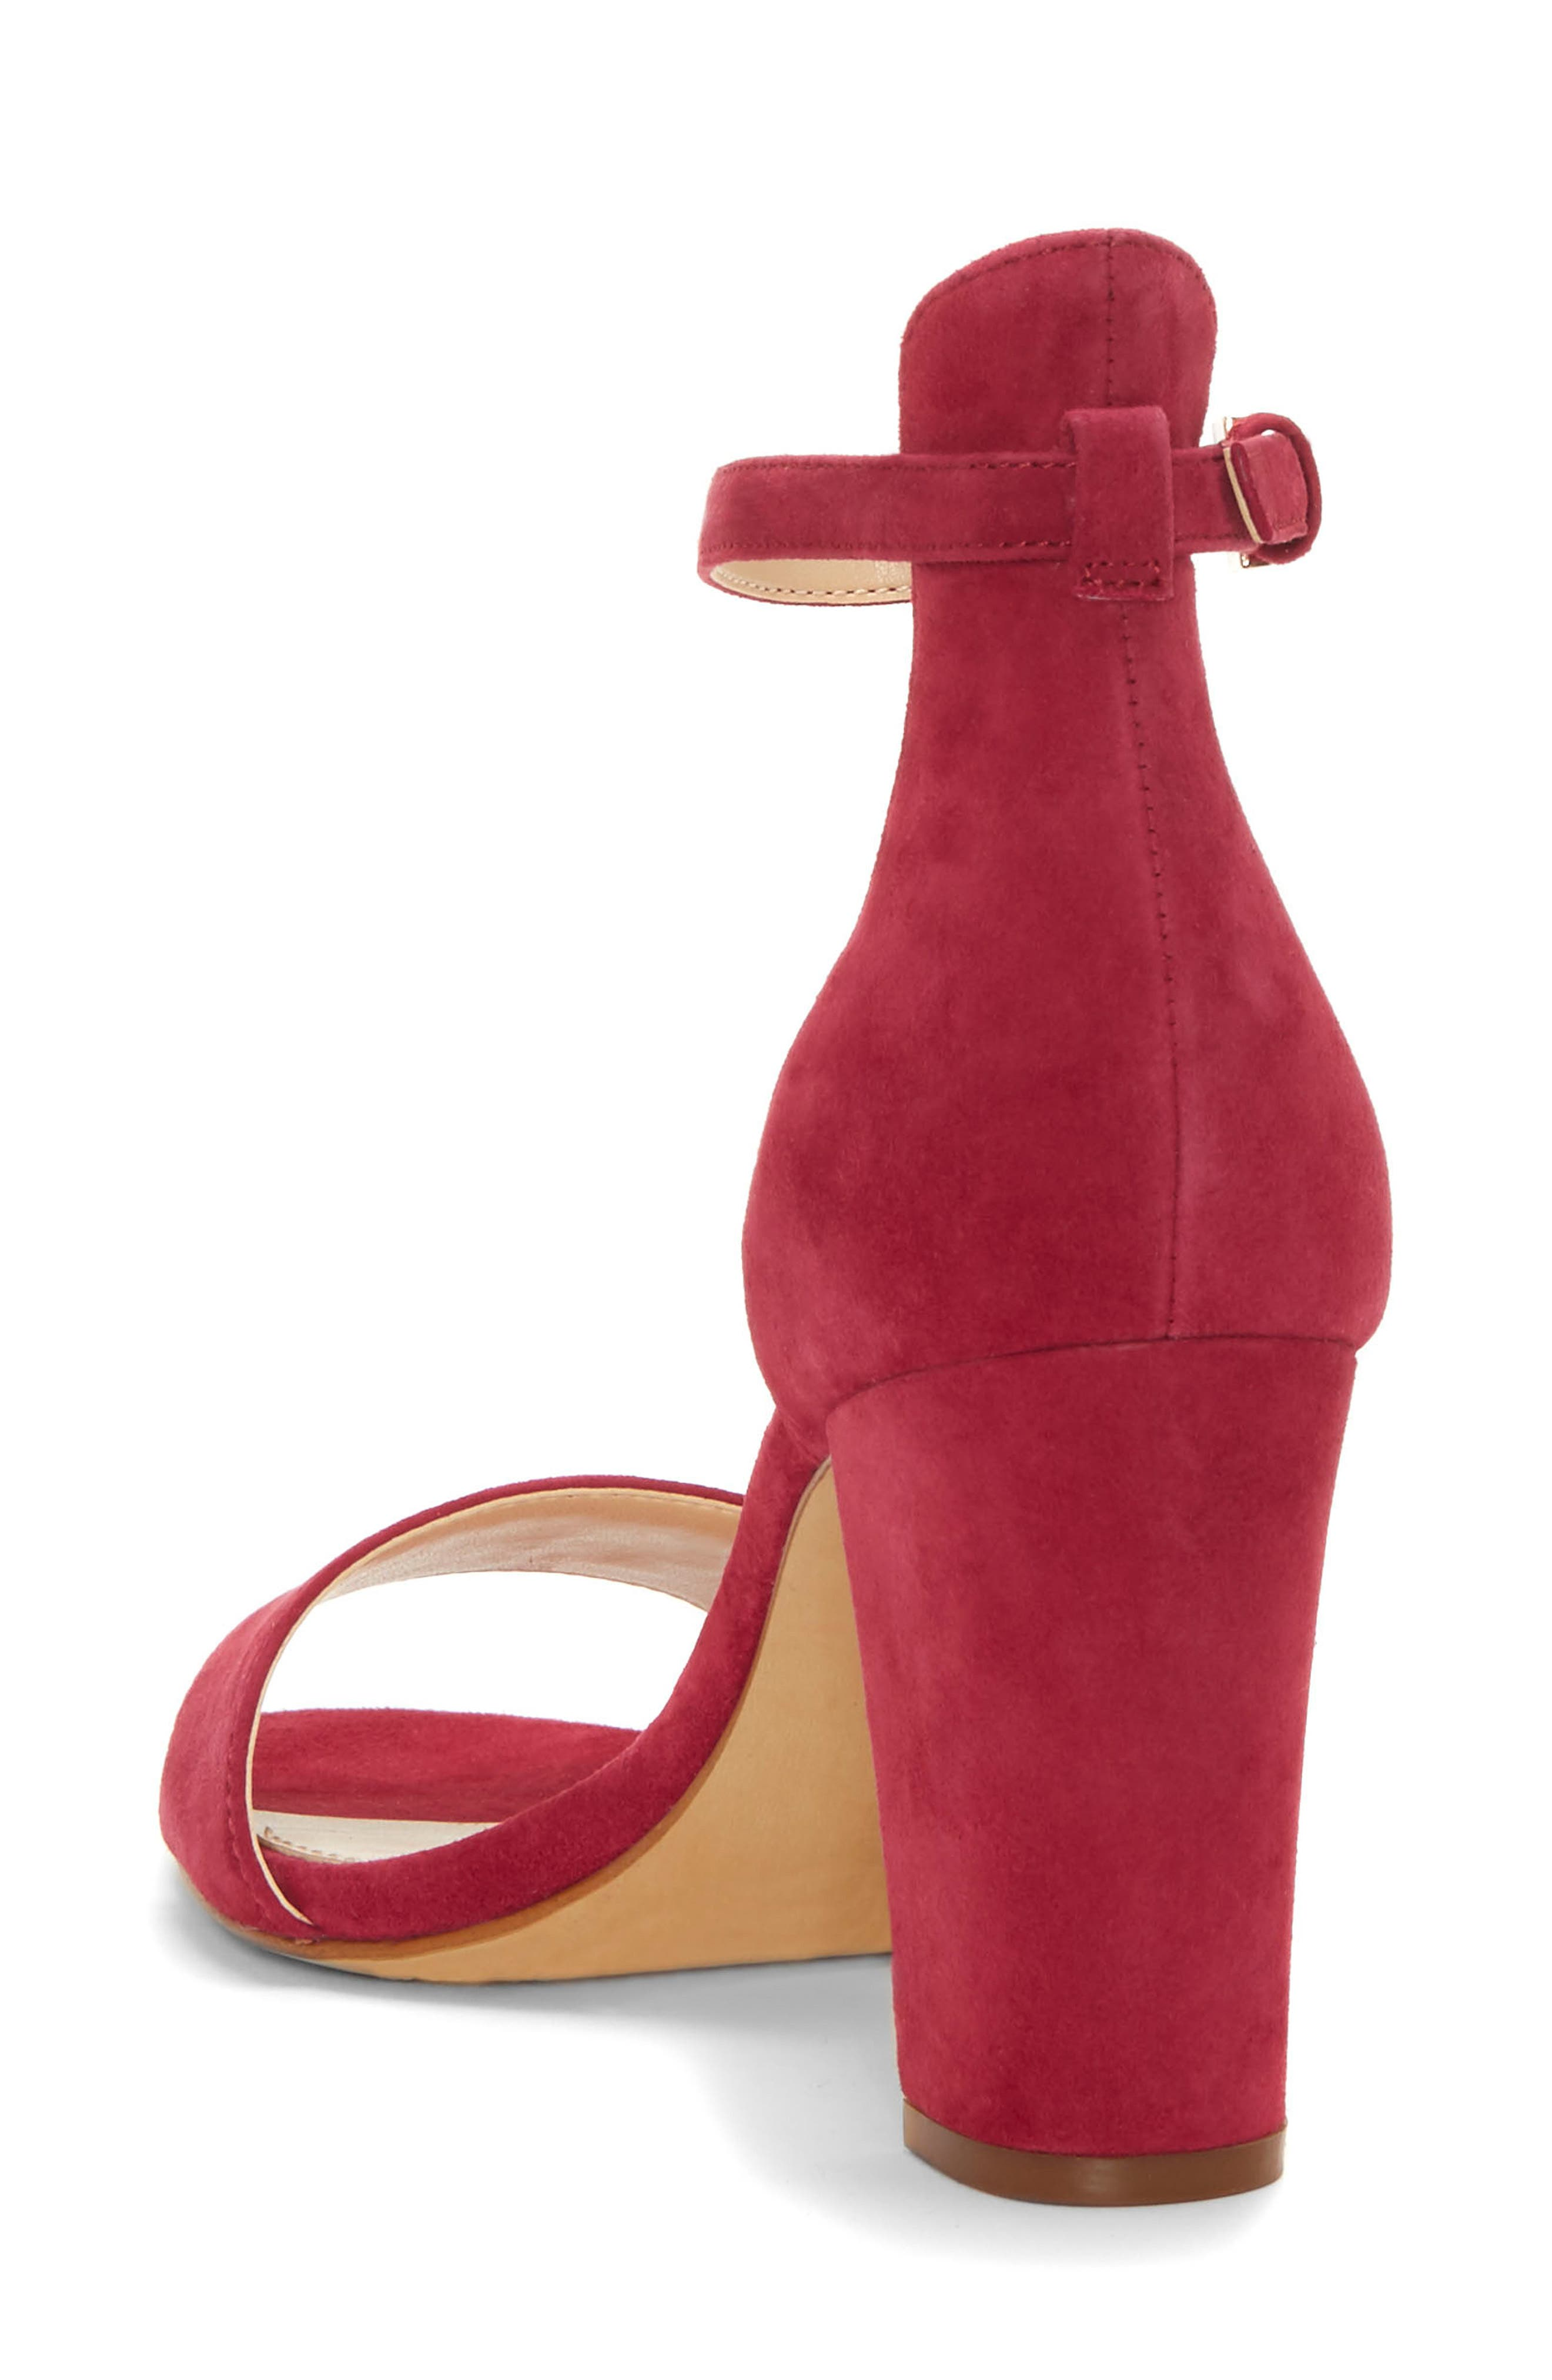 Corlina Ankle Strap Sandal,                             Alternate thumbnail 2, color,                             SWEET BERRY SUEDE